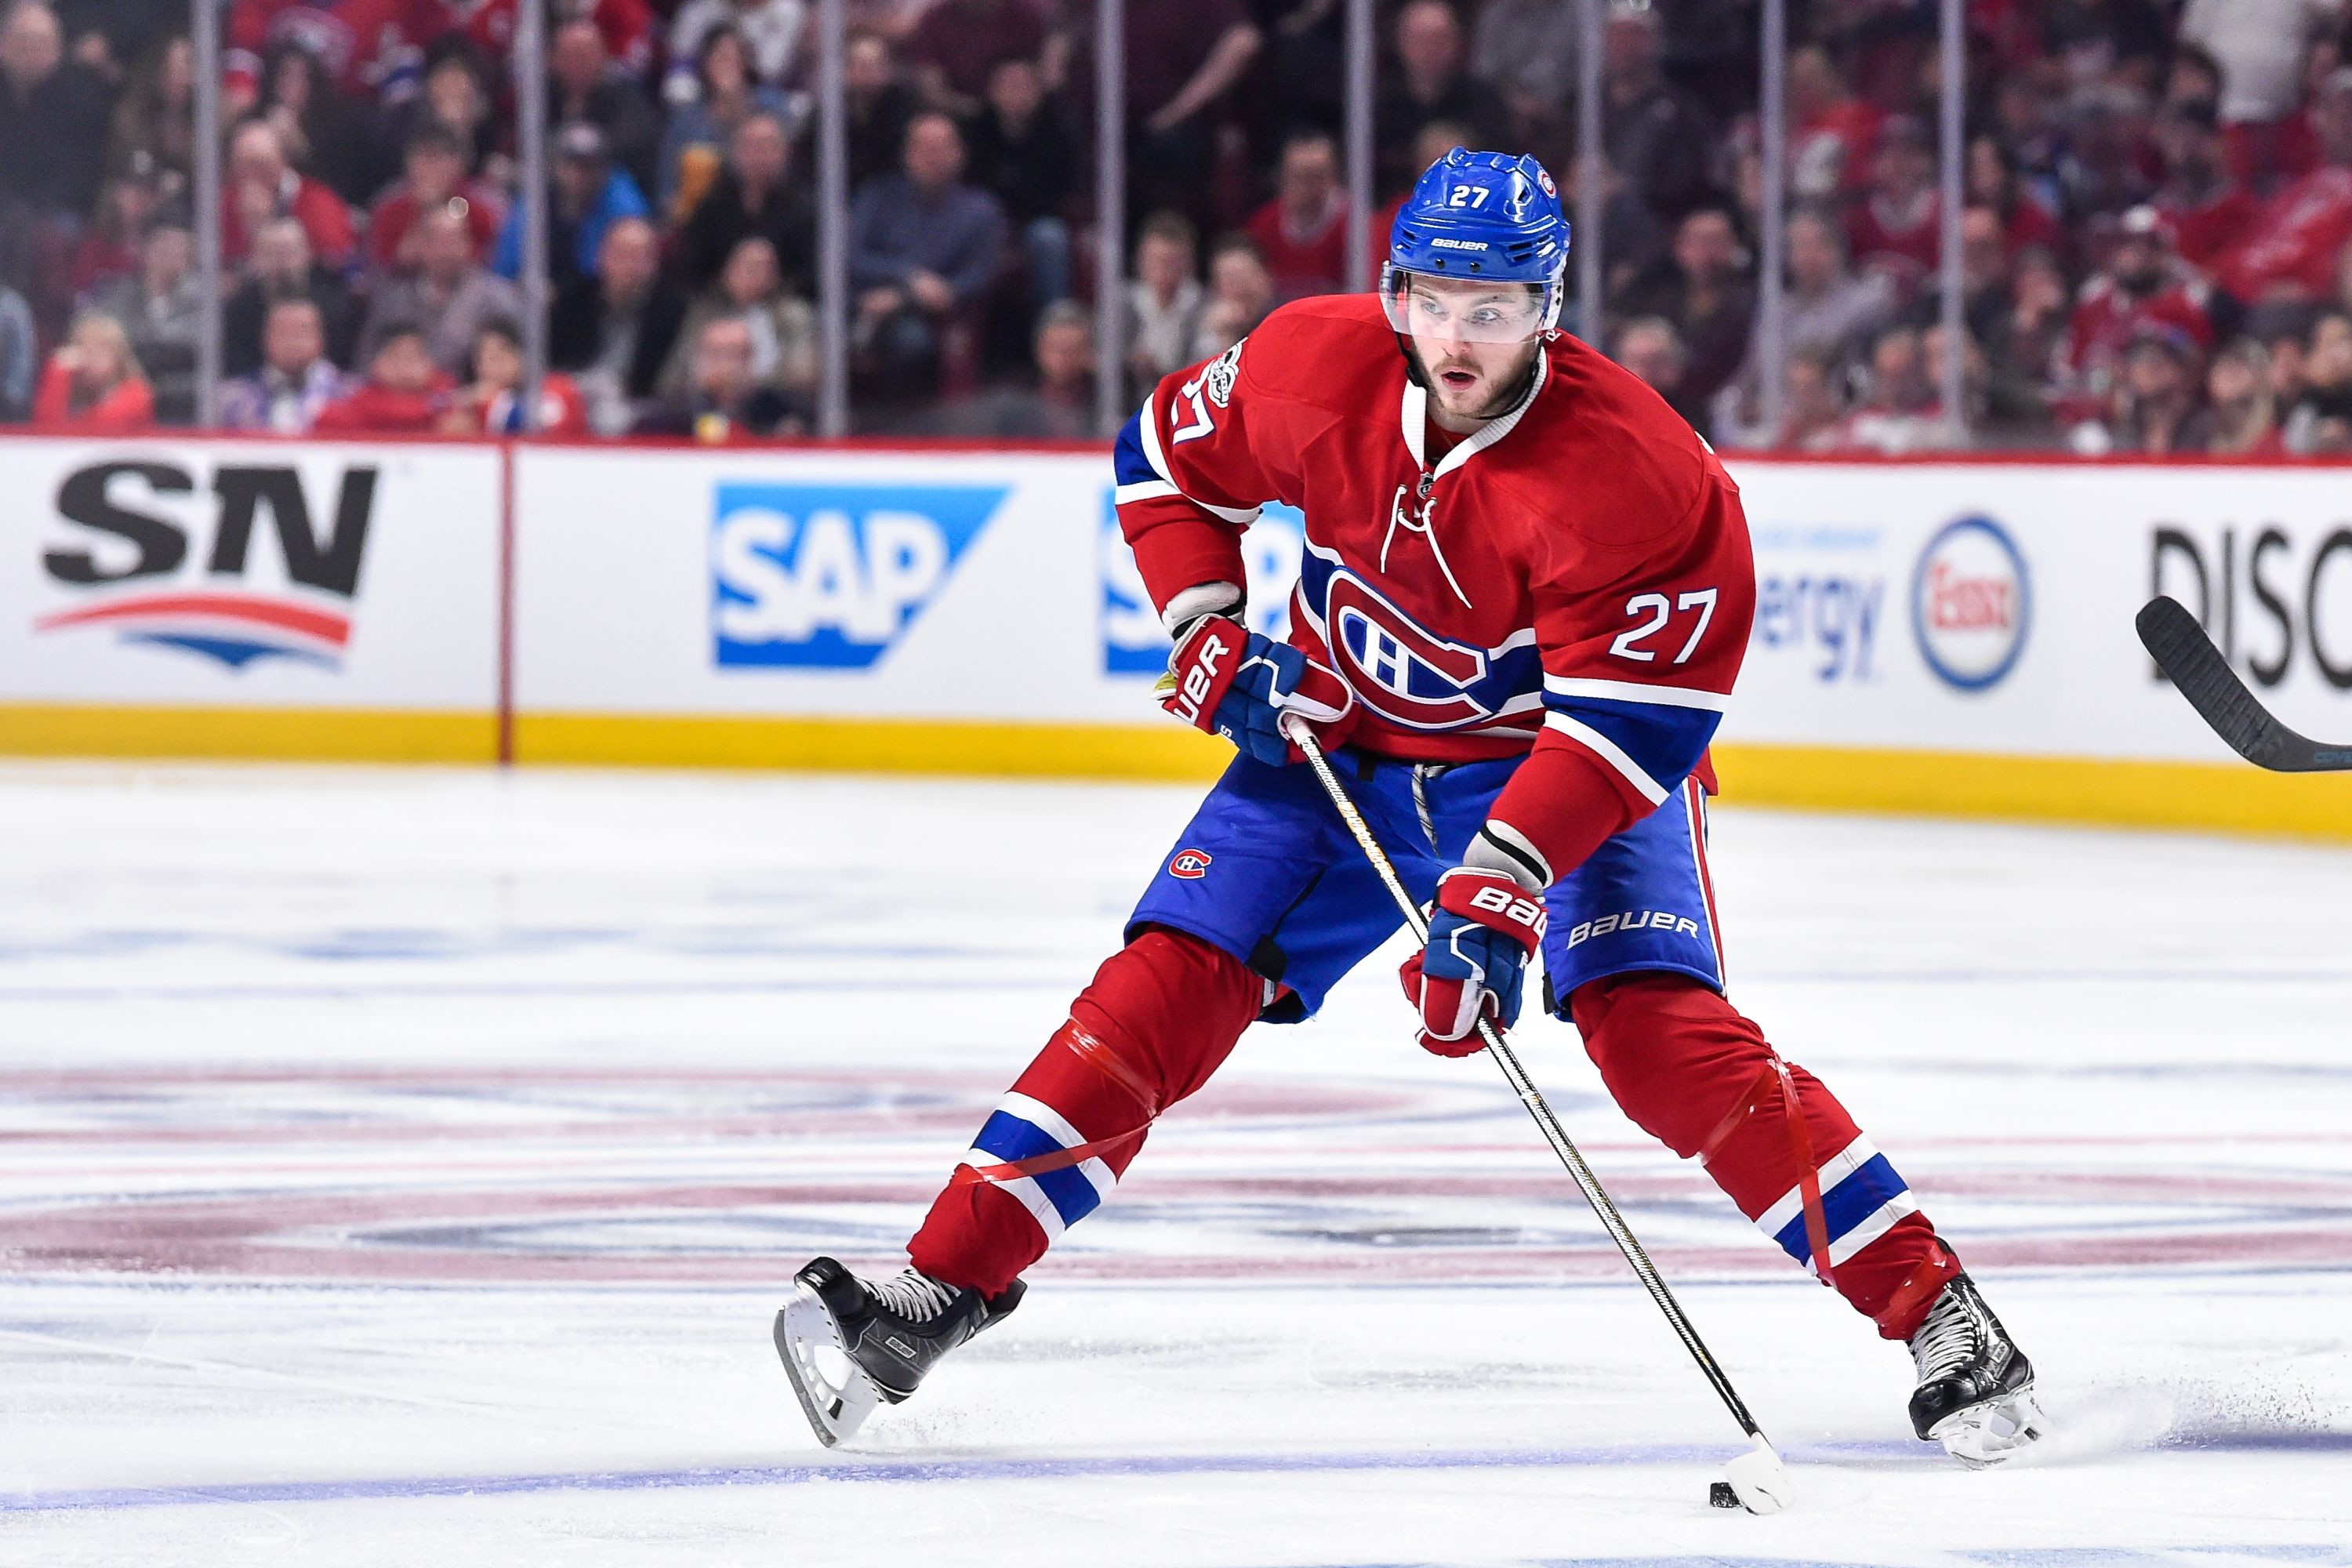 Res: 3000x2000, Montreal Canadiens: Alex Galchenyuk Will Not Play Center A Winning Habit